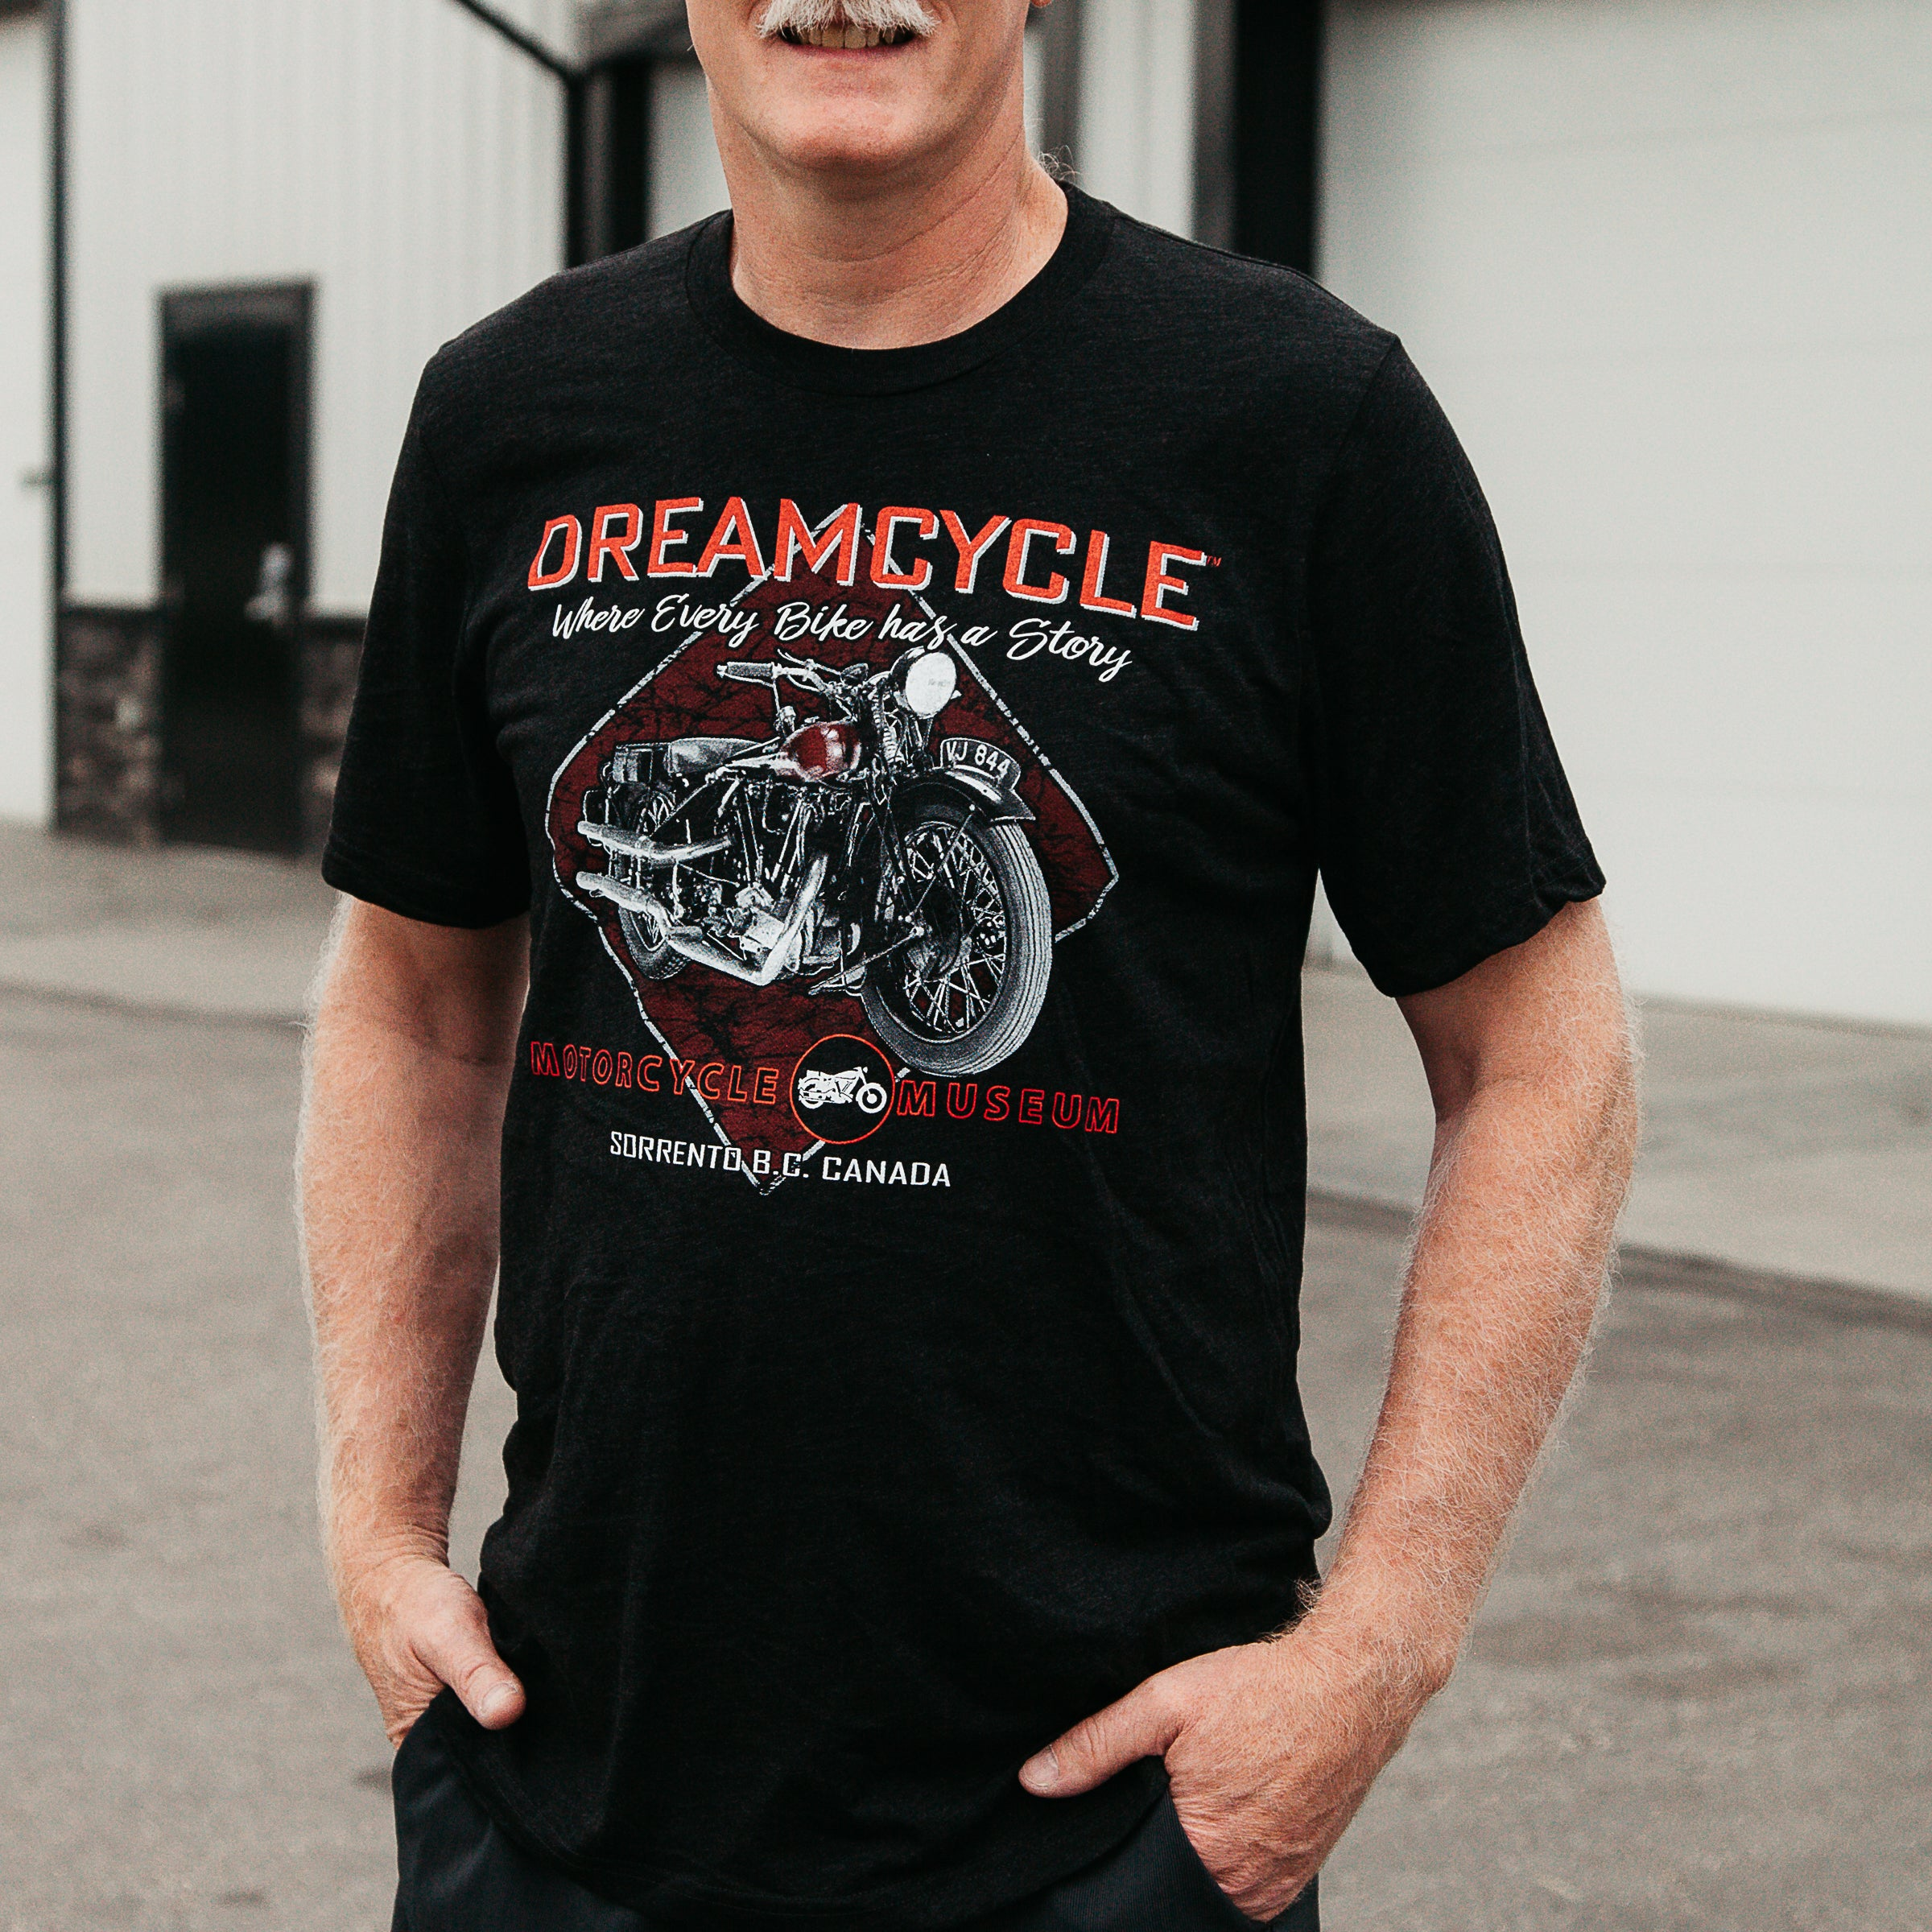 "Dreamcycle Motorcycle Museum |  Close up of a man standing in a lifestyle setting wearing a shirt that says ""`dreamcycle"" With a motorcycle on the front."